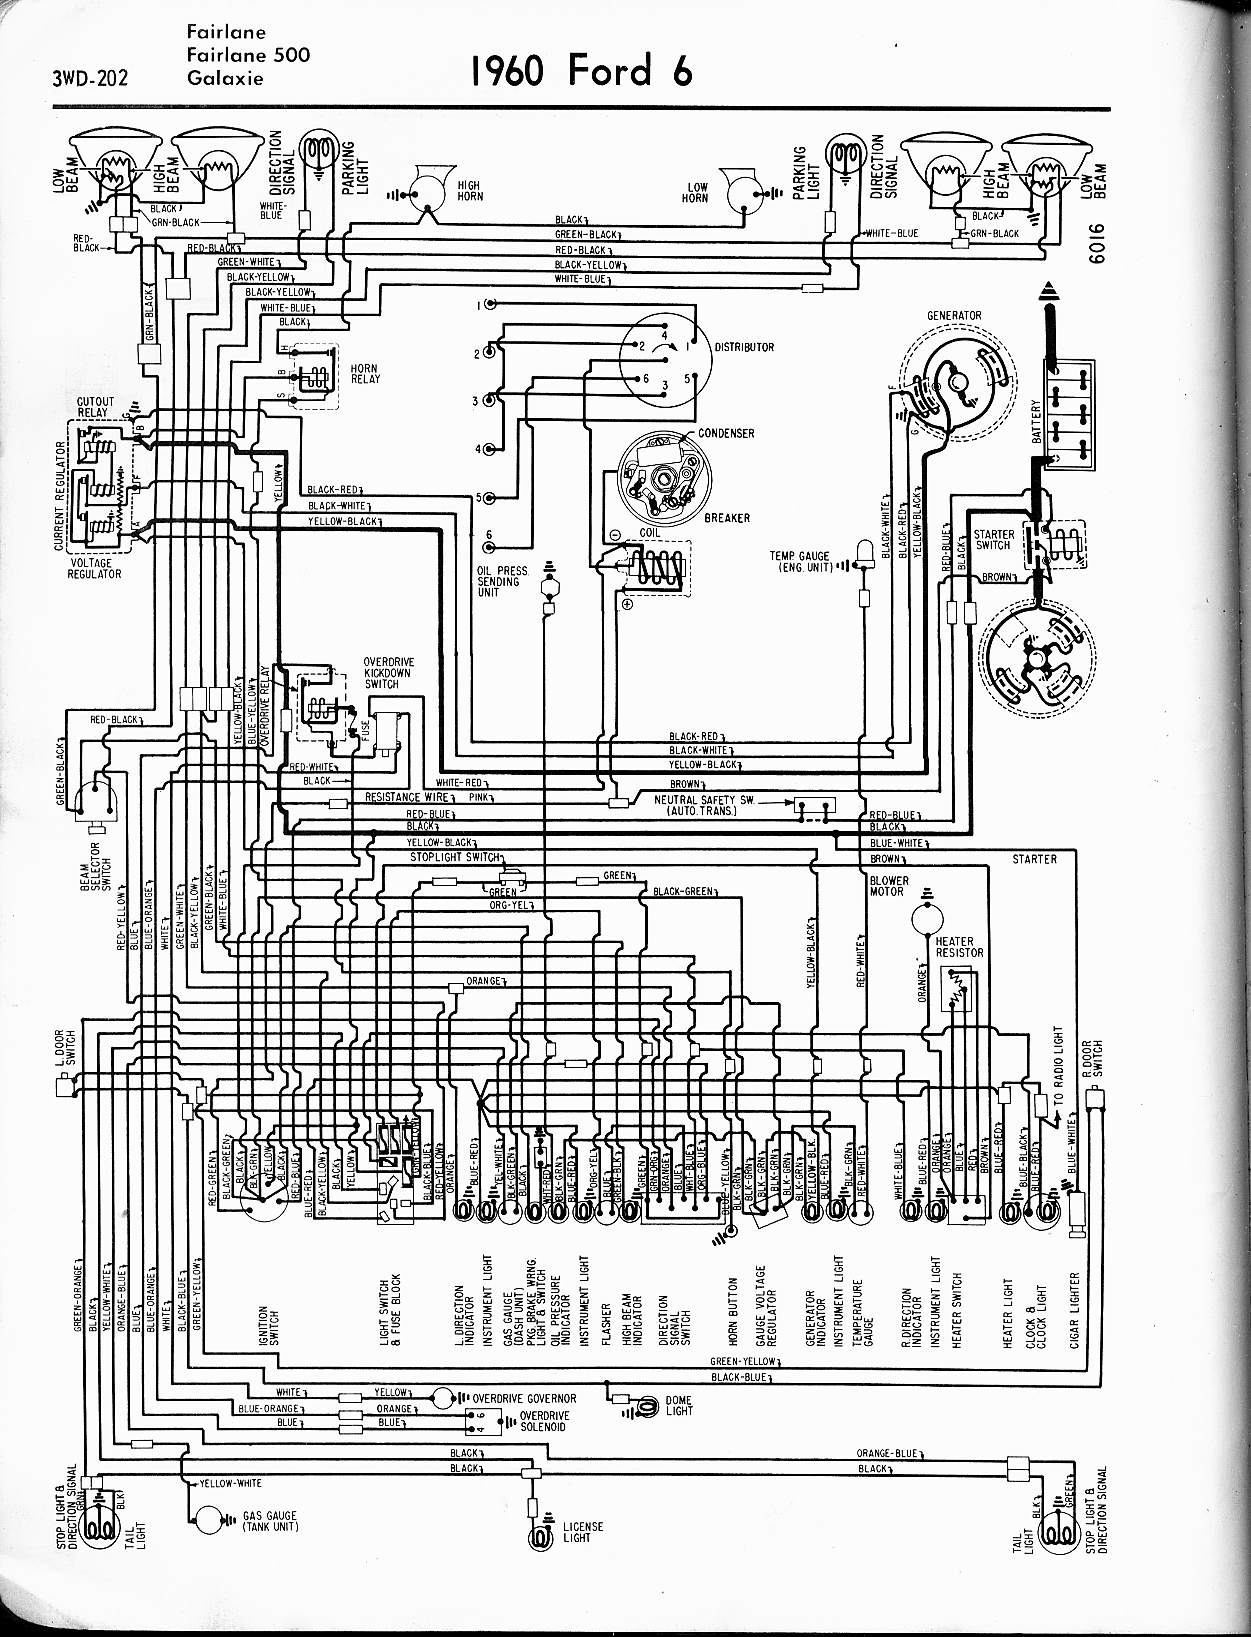 1342693 1960 F100 Fuse Block Headlight Switch further Gmc 305 V6 Schematic besides 1965 Ford Galaxie Alternator Wiring Diagram likewise 85 Ford F 150 With Inline 6 Wiring Diagram in addition Schematics b. on 1962 ford truck wiring diagram